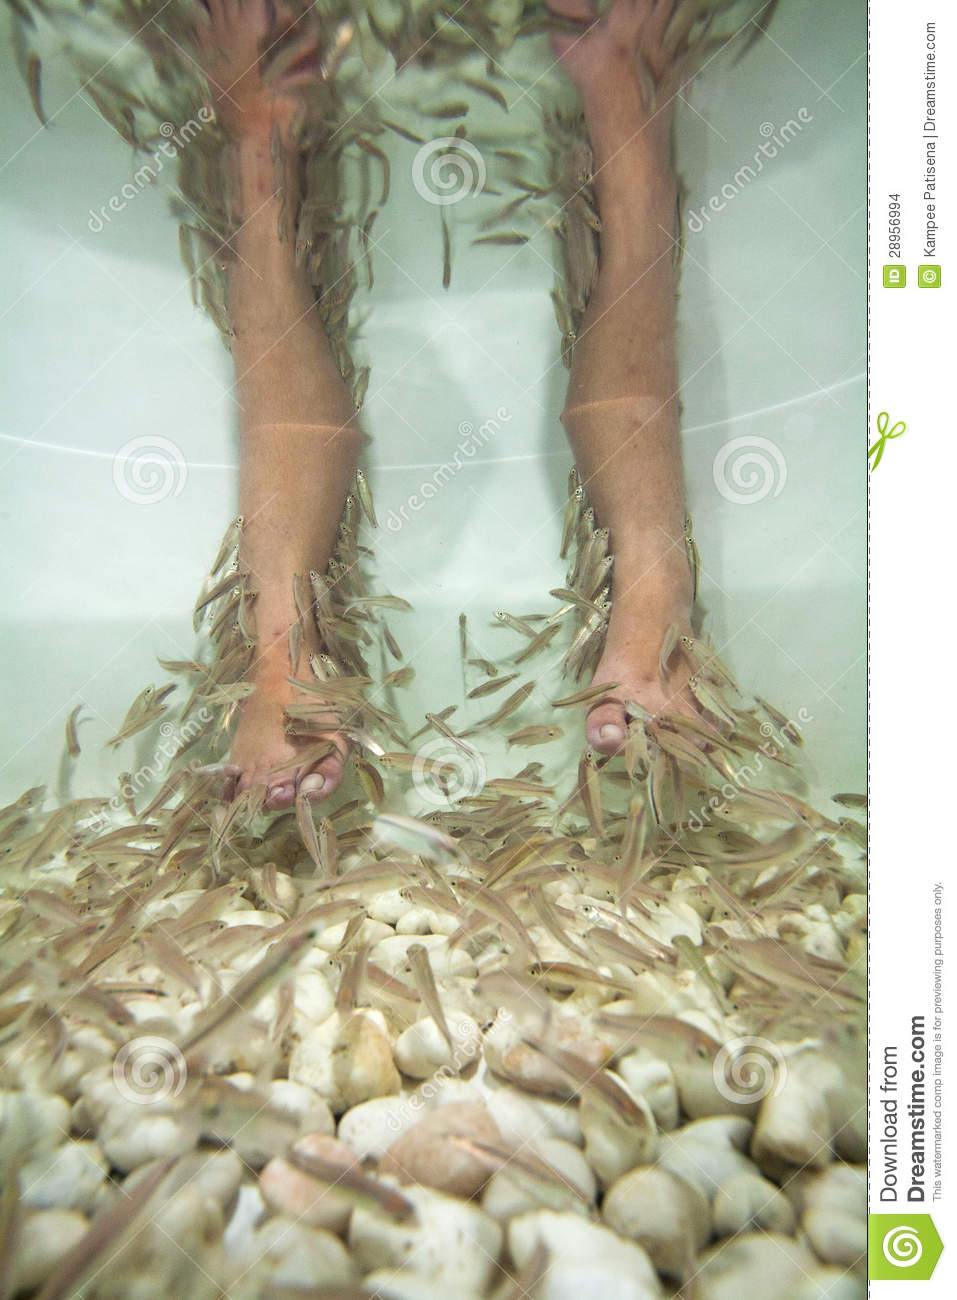 fish spa pedicure treatment stock images image 28956994